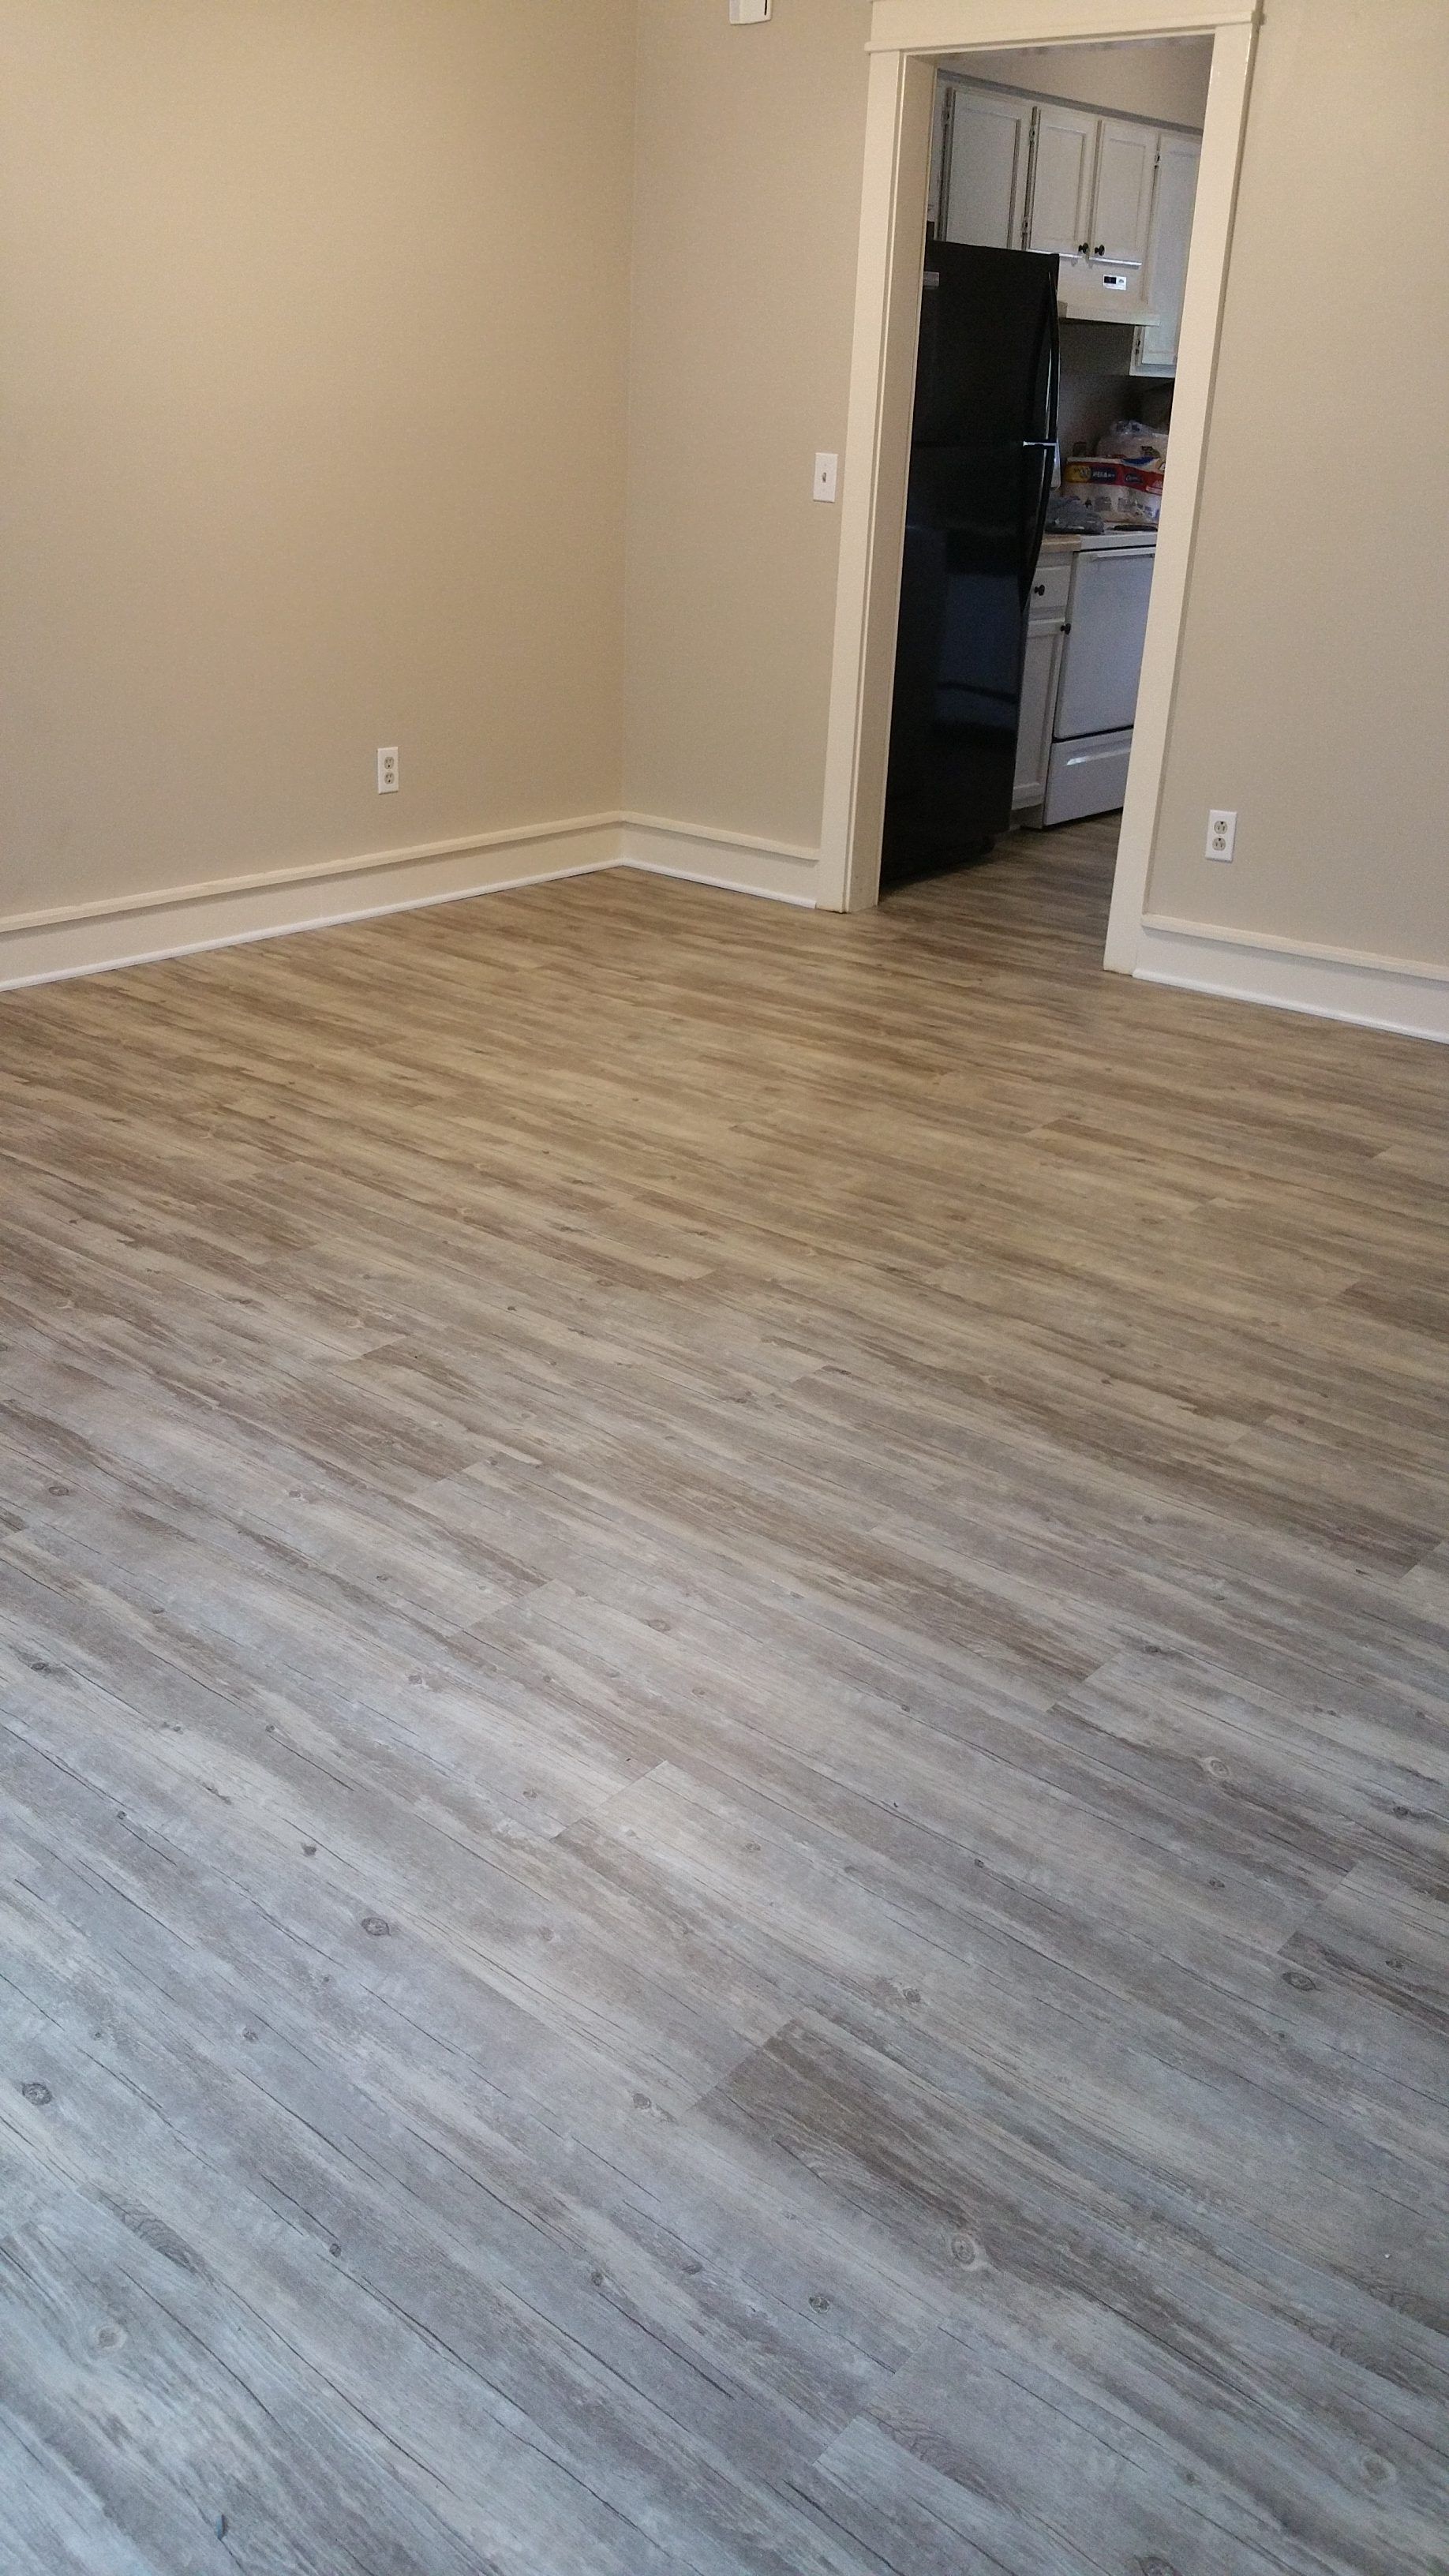 Hardwood Floor Cleaning Companies